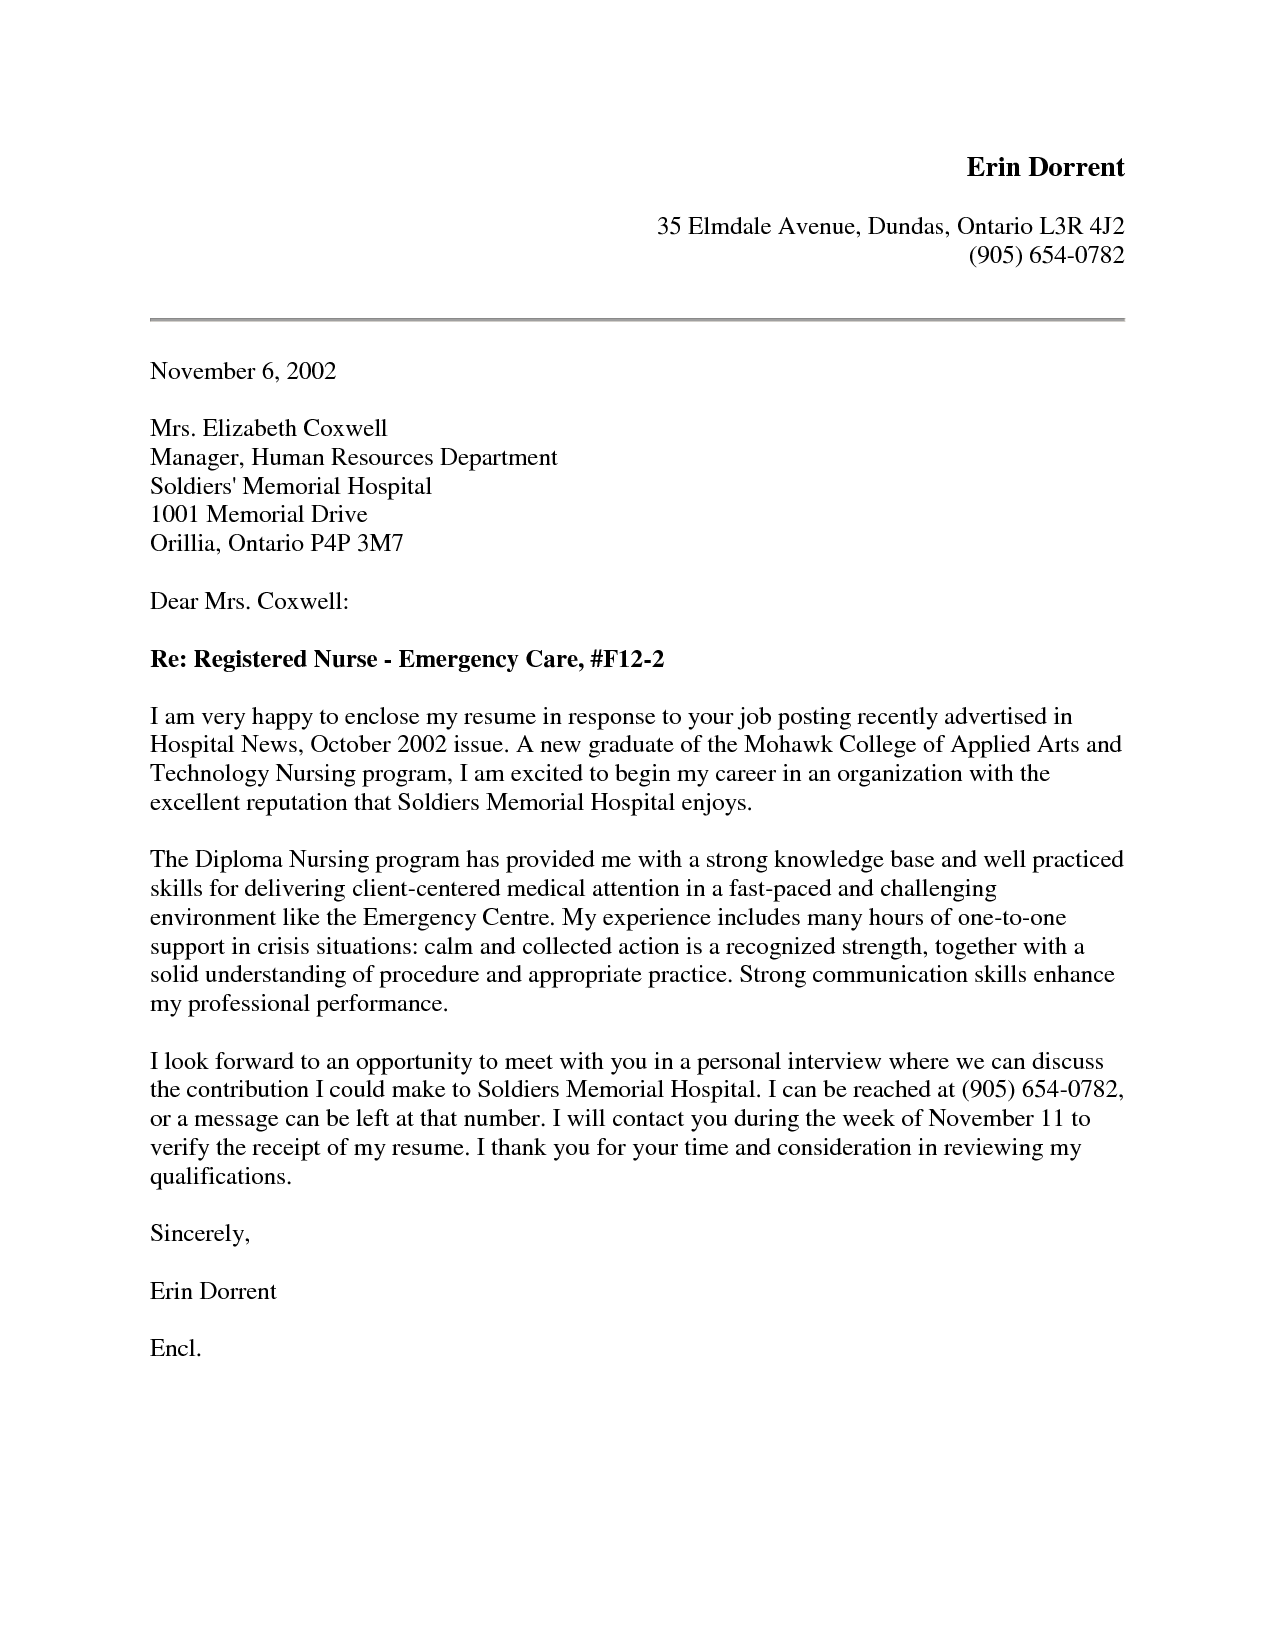 new grad nursing cover letter - Google Search | Nursing | Pinterest ...